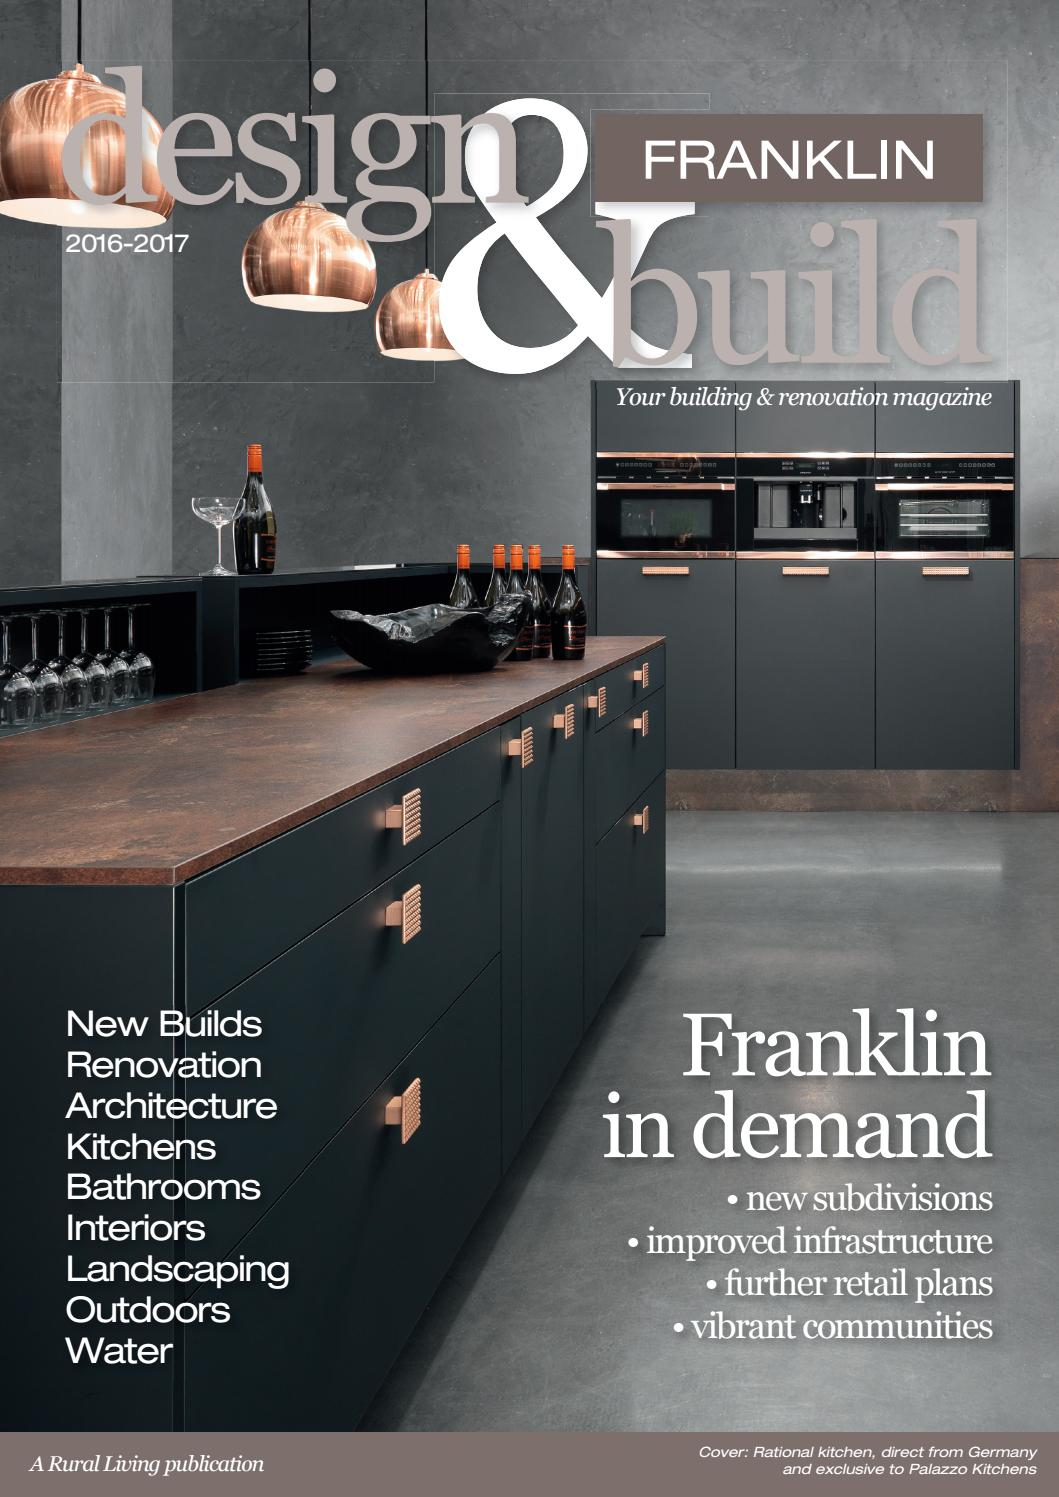 Design And Build Franklin 2016 17 By Times Media Issuu Double Pole Single Throw Switch 20 Amp Alfrescoheatingcom